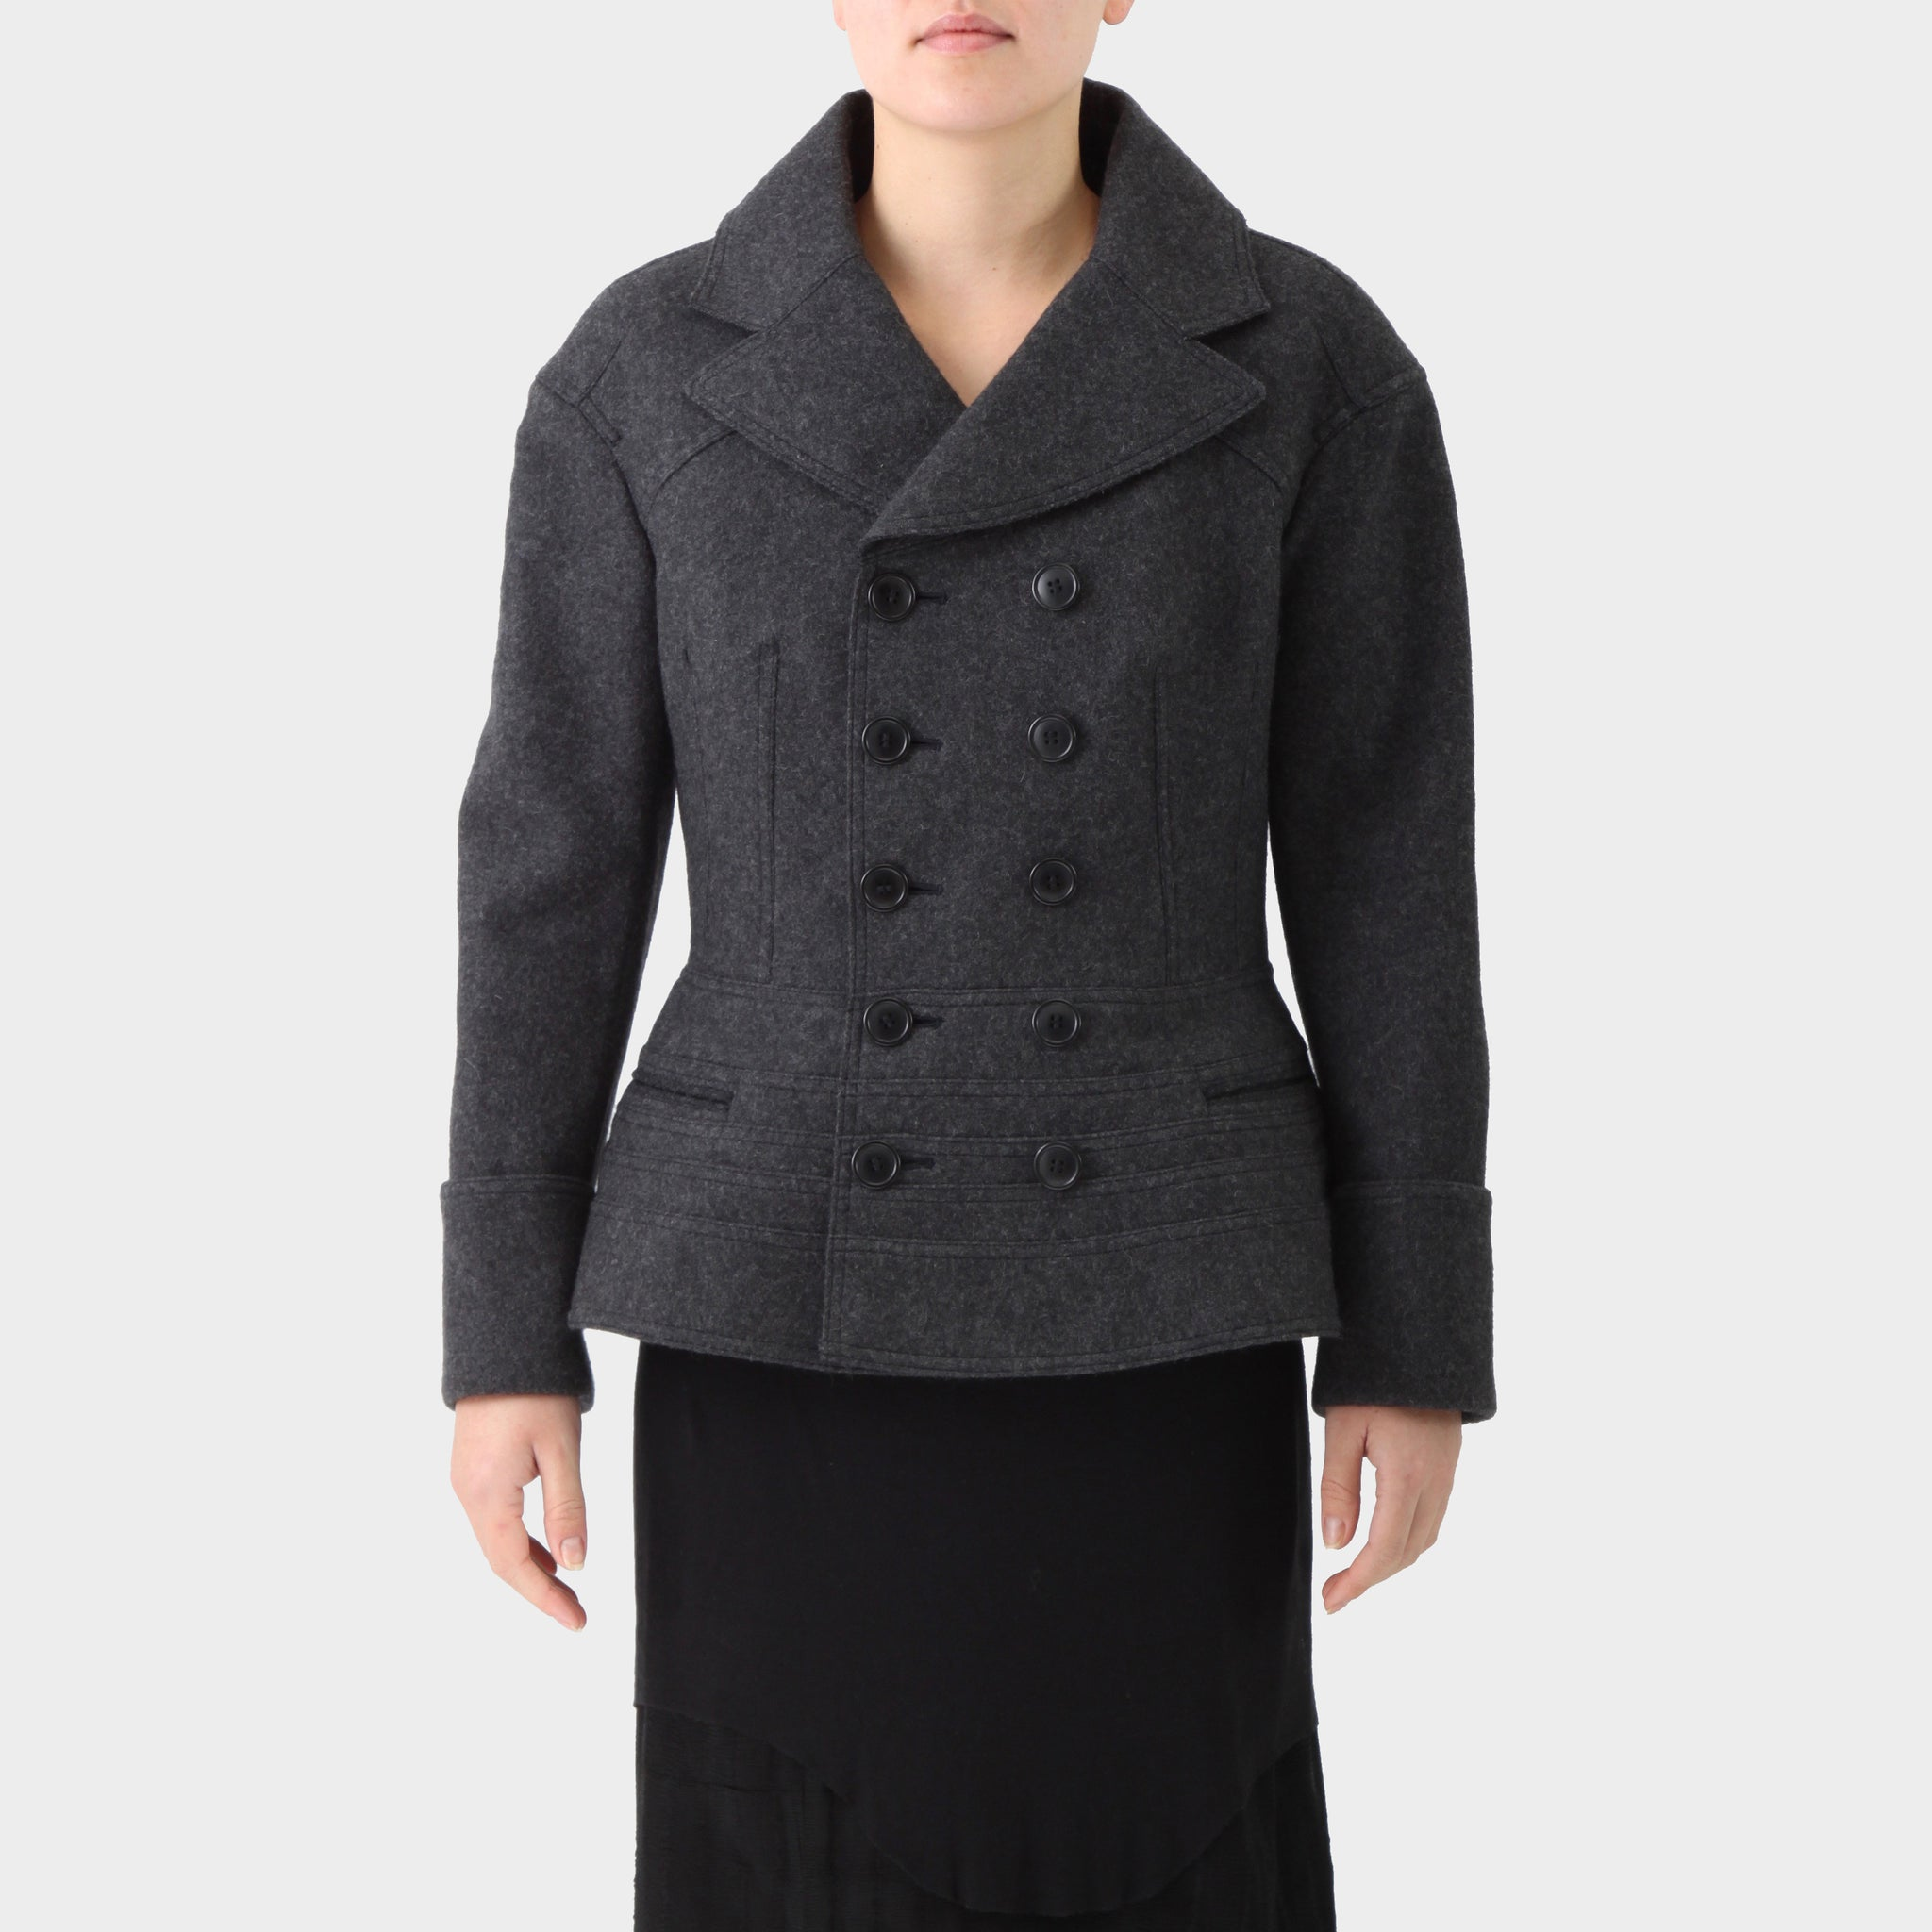 Junya Watanabe Double Breasted Charcoal Felted Wool Coat